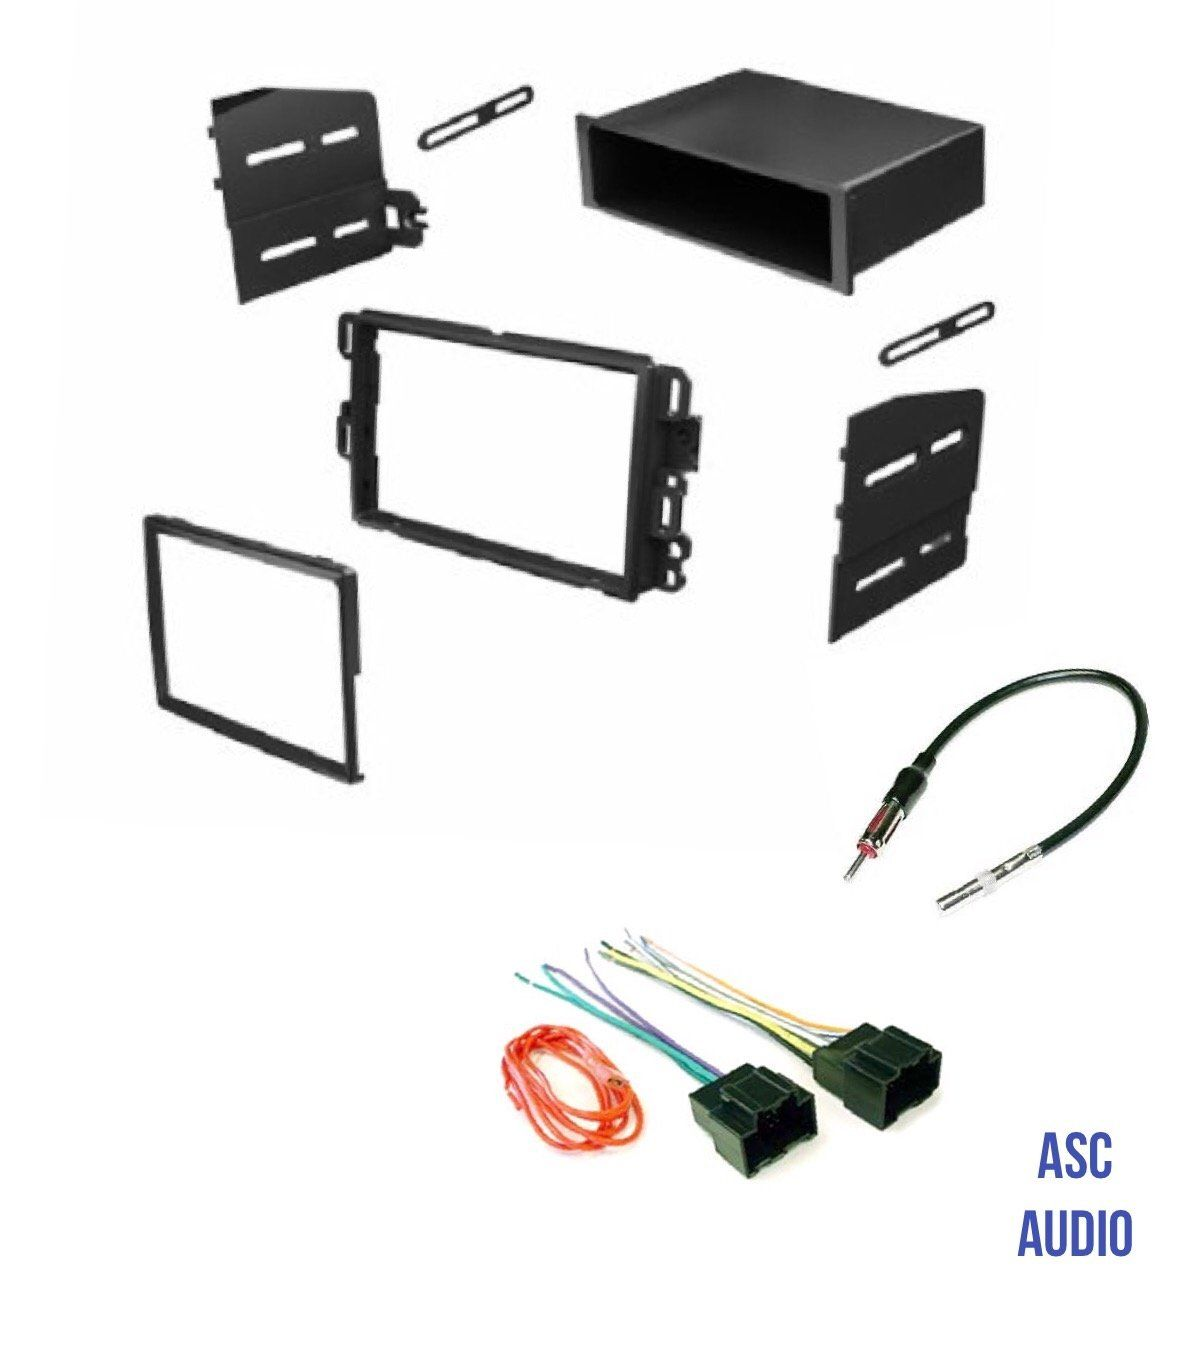 5a29dfae1512d1aaeca596a396162f89 asc audio car stereo dash kit, wire harness, and antenna adapter  at alyssarenee.co